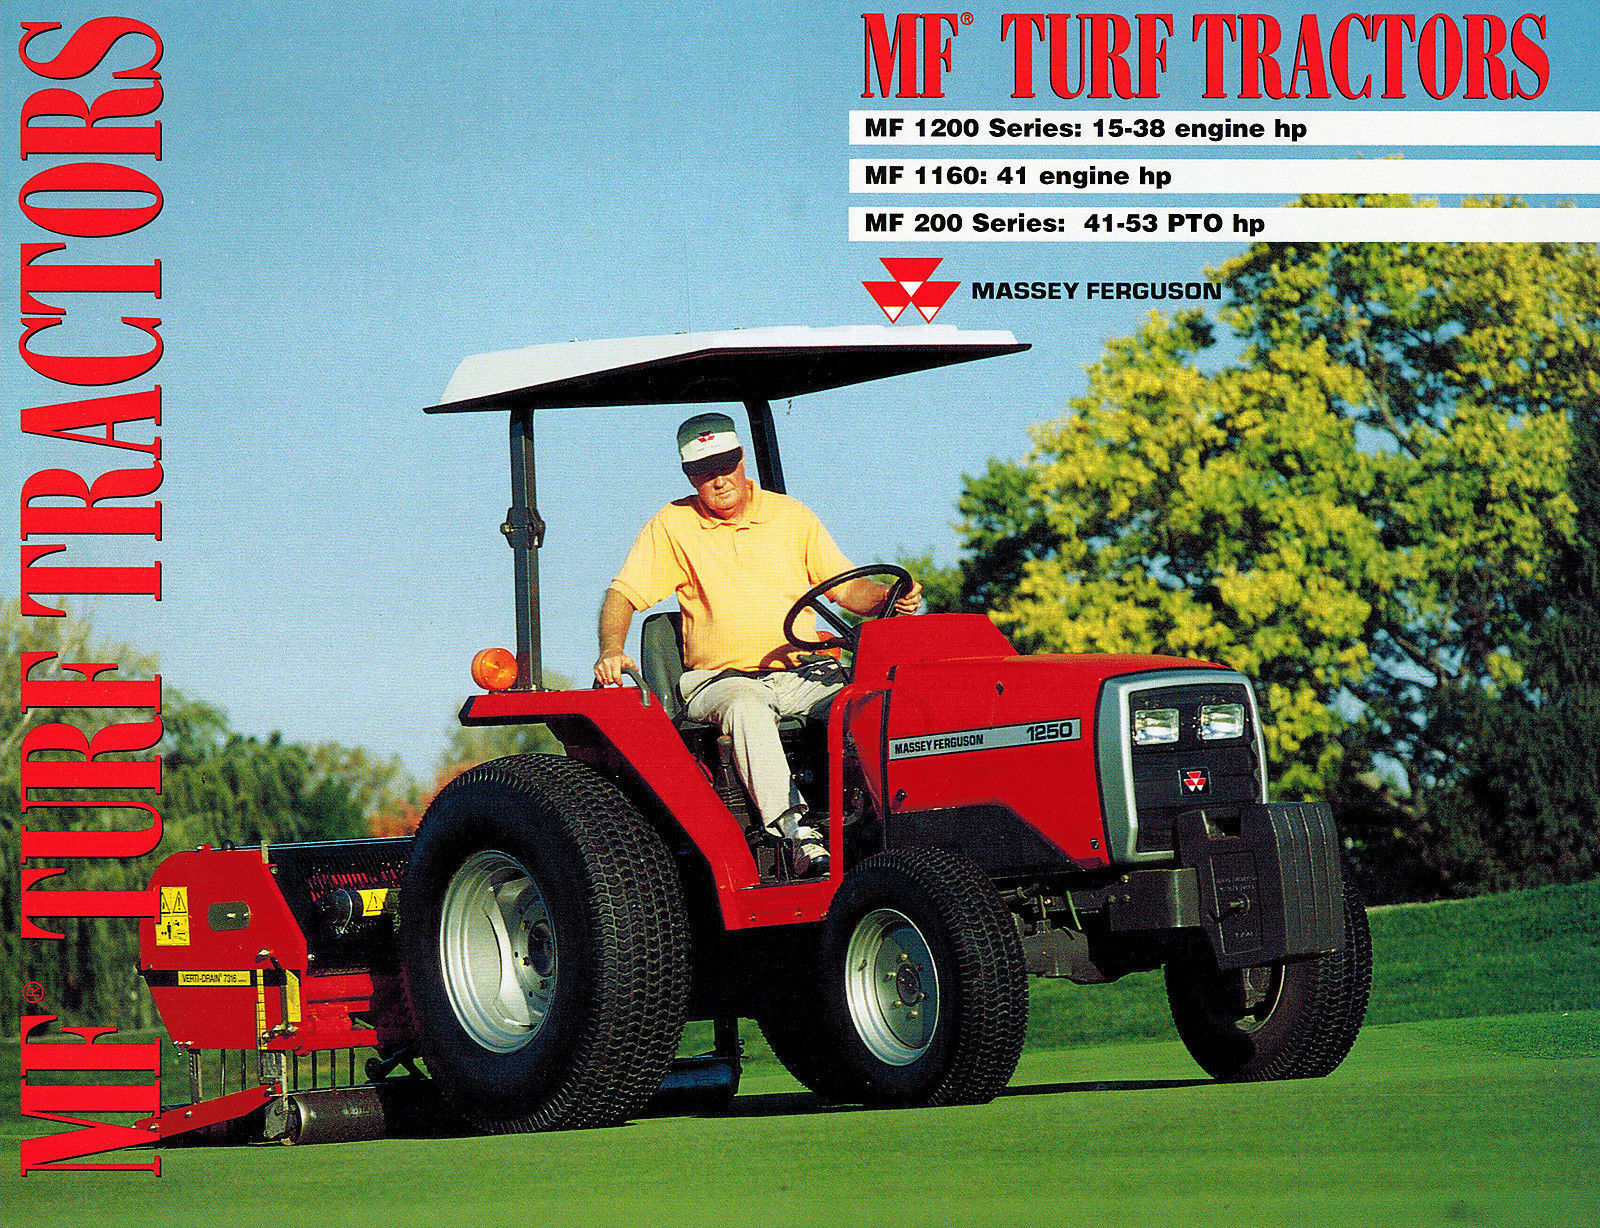 Massey Ferguson 200 Series 1160 1200 Series Turf Tractors Sales Brochure 1  of 5Only 1 available ...